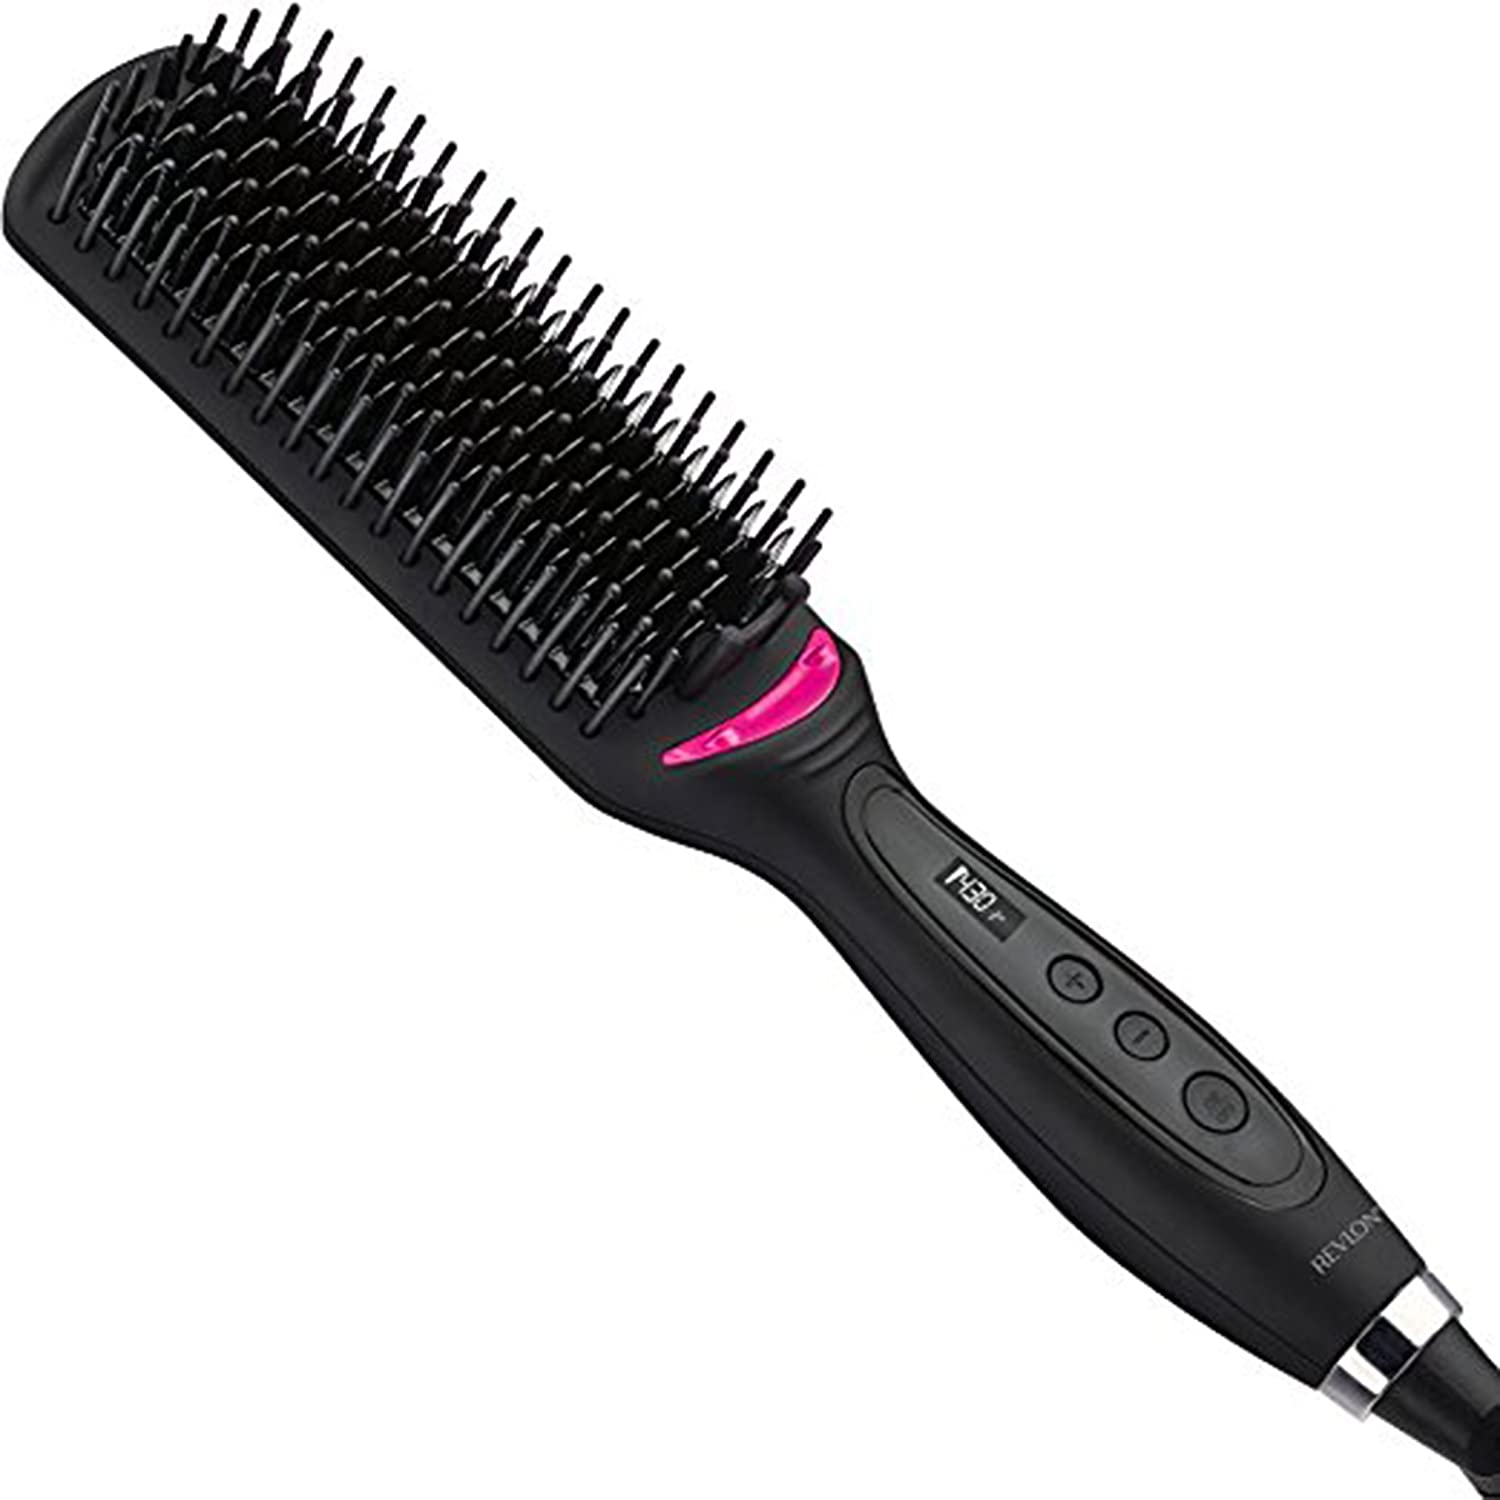 Revlon Salon One-step Straight and Shine Xl Heated Brush, 1 Count Helen of Troy